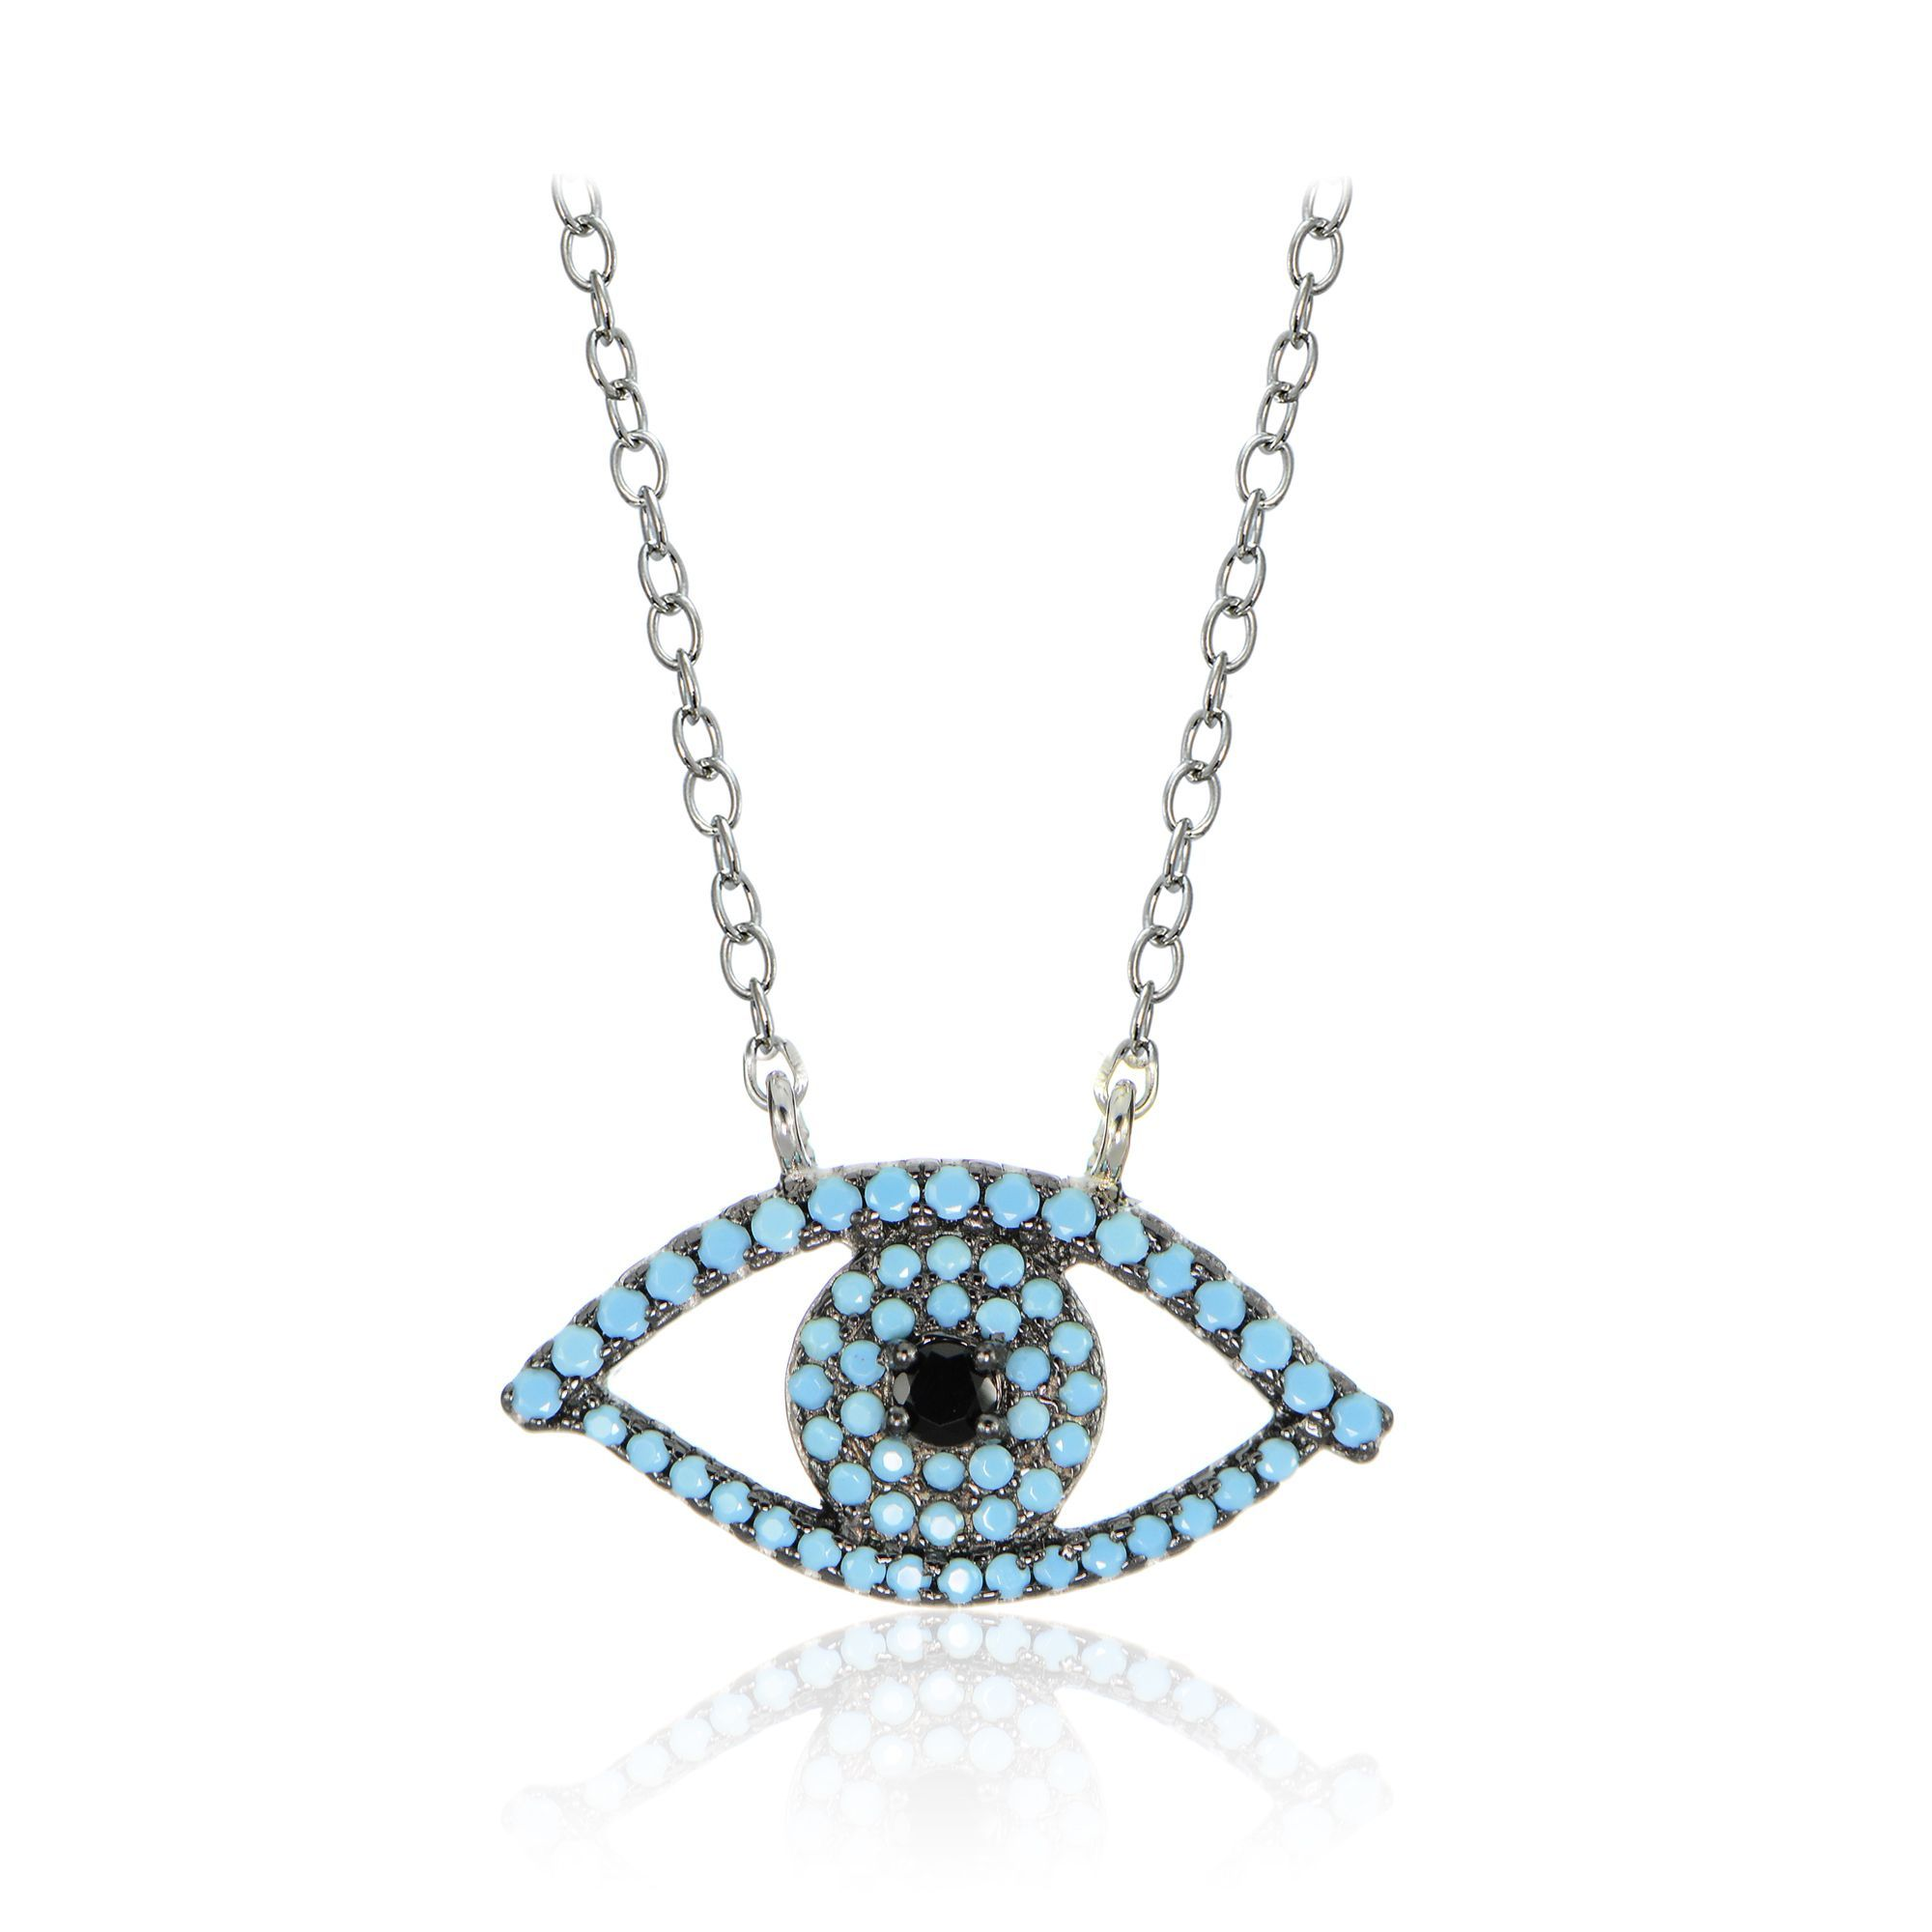 galery eye evil necklace website saveenlarge luxury diamond traumspuren jewellrys gold blue